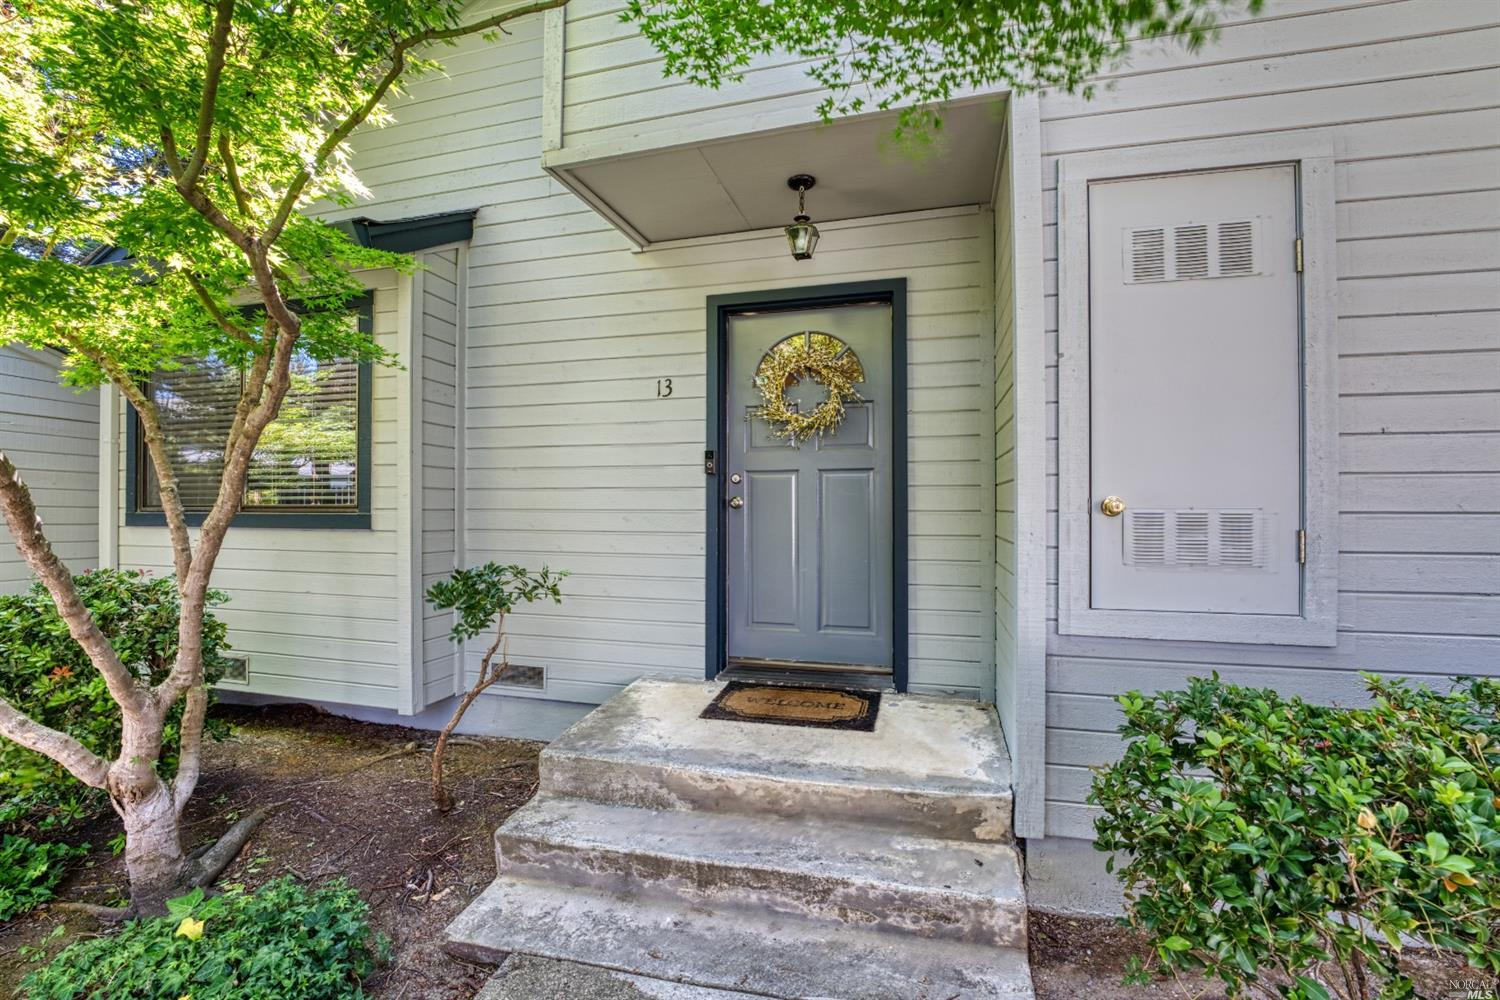 Single level 1BD/1BA corner Condo nestled within the redwoods at Village Parkway.This home feels  bi